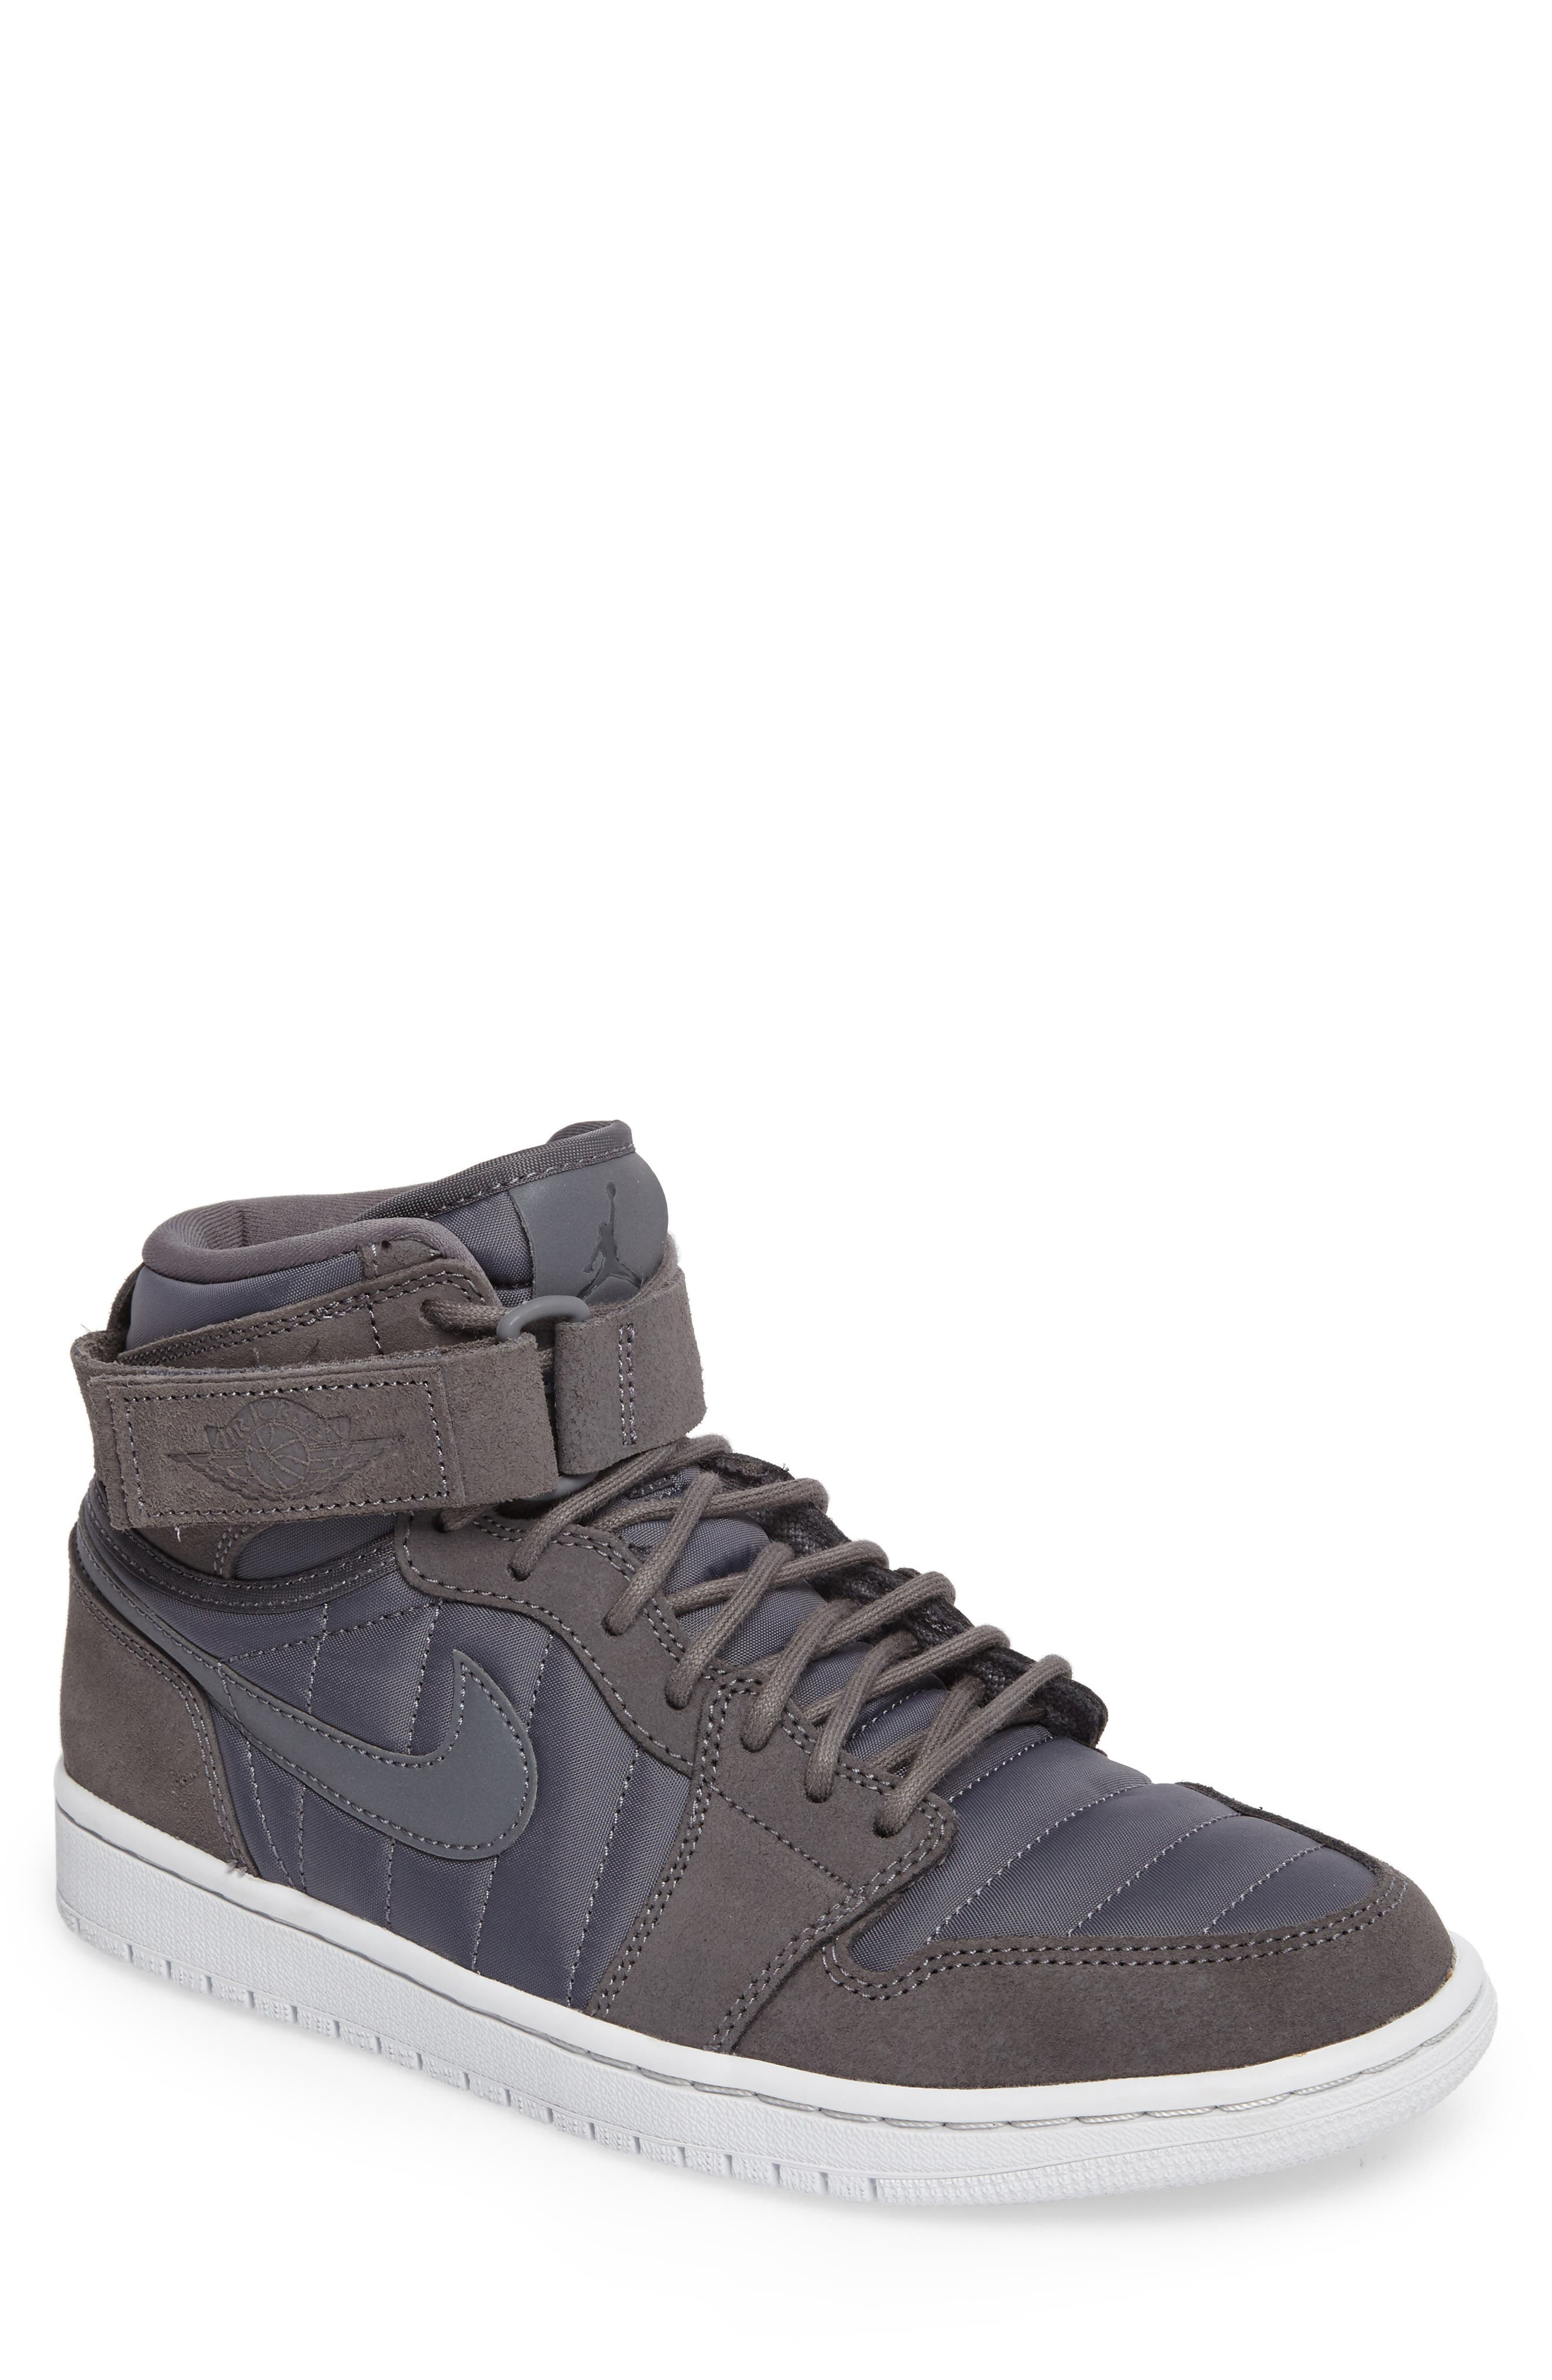 Air Jordan 1 Sneaker,                         Main,                         color, Dark Grey/Anthracite/Platinum